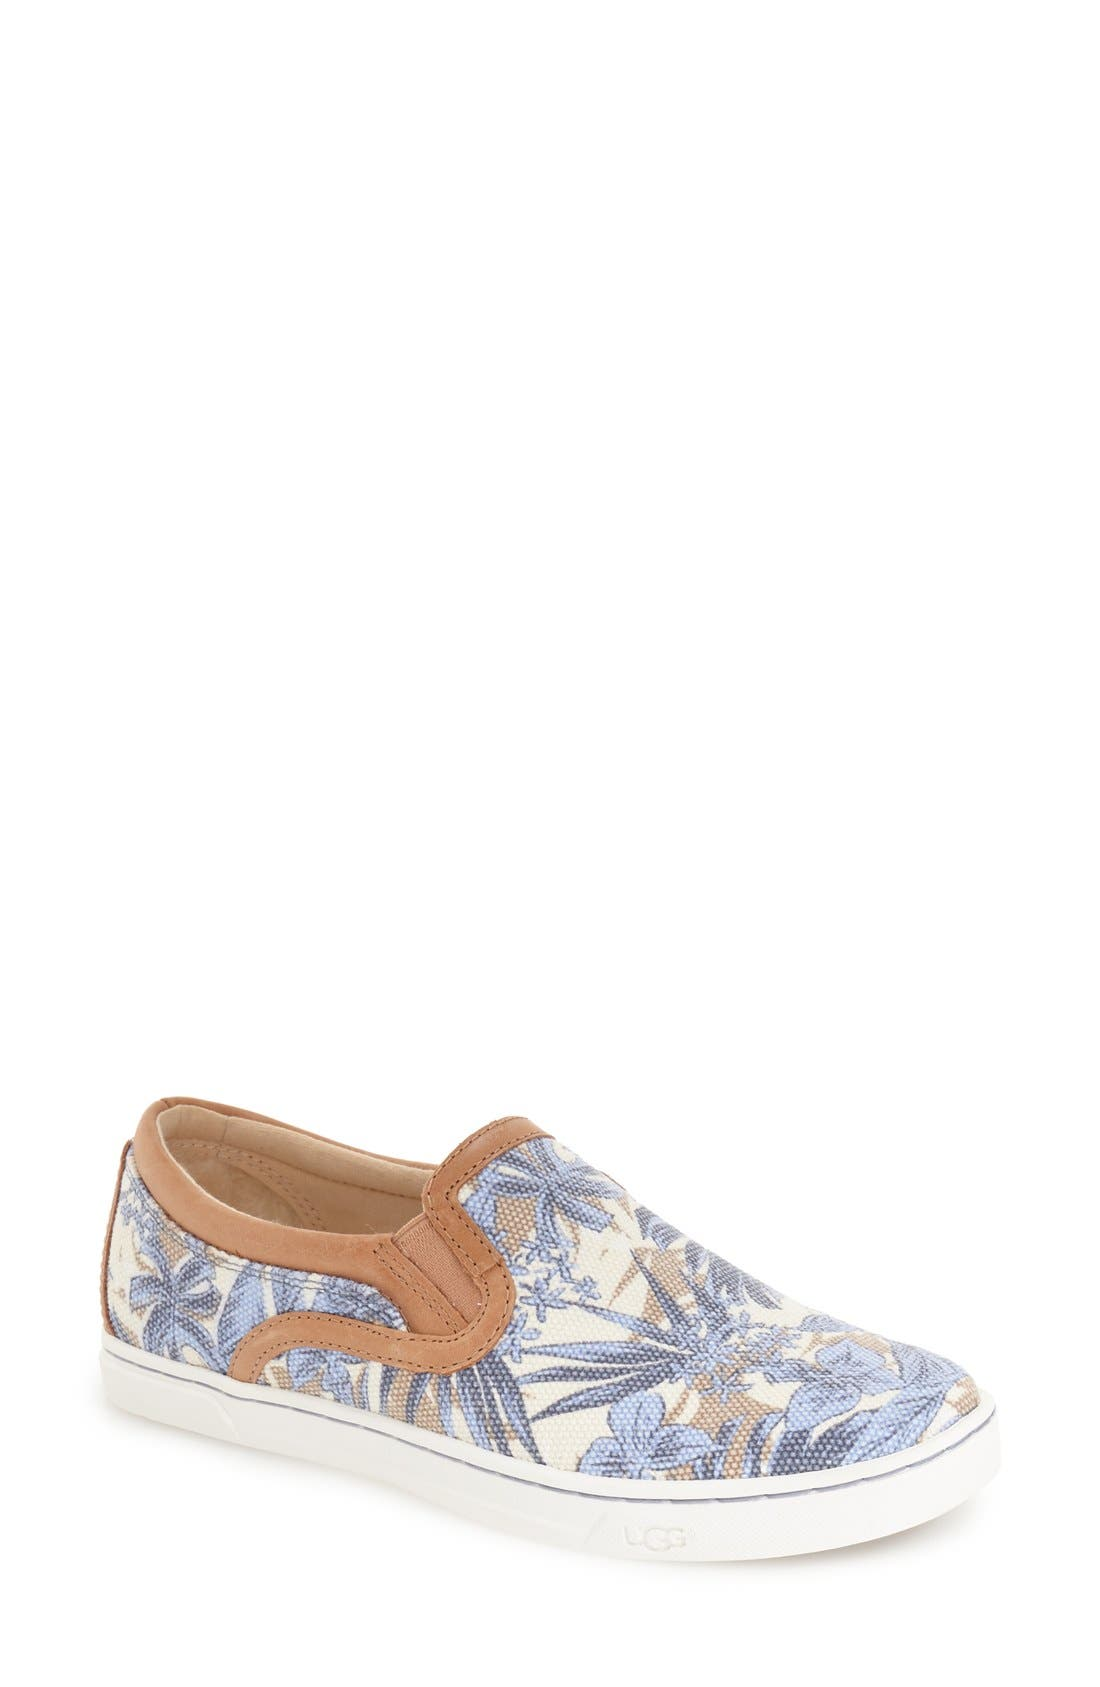 Main Image - UGG® 'Fierce - Island Floral' Slip-On Sneaker (Women)